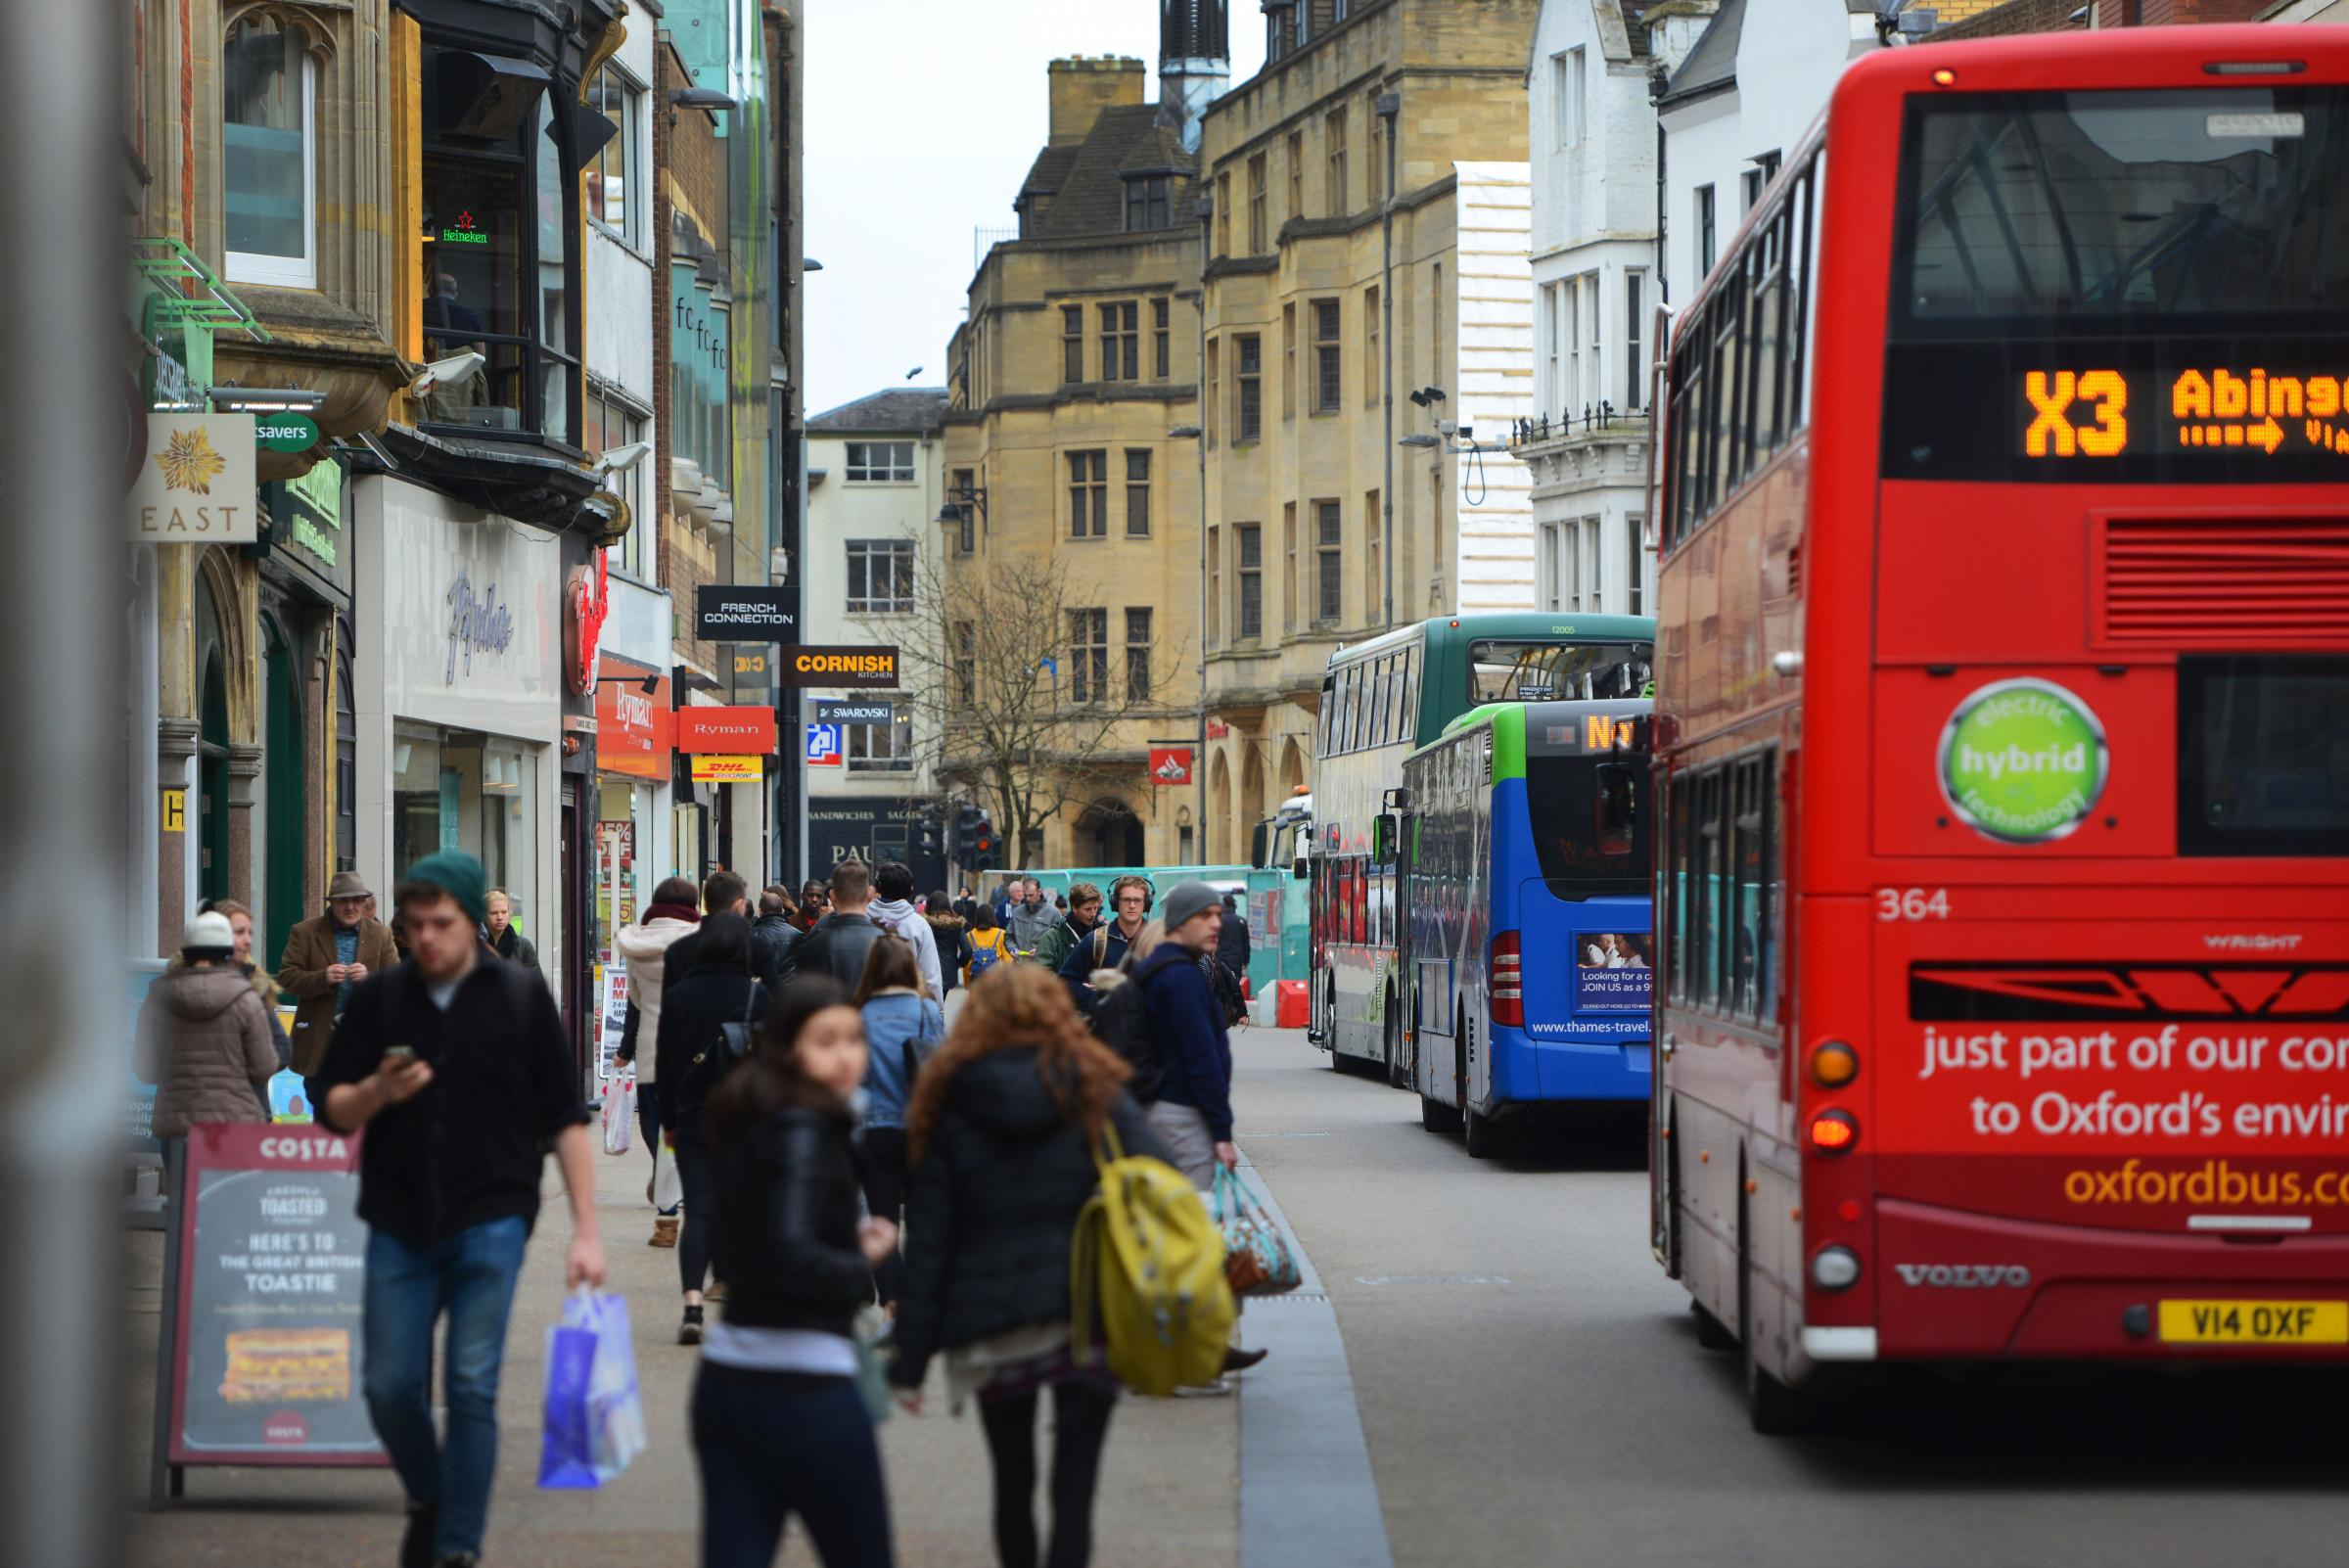 Oxfordshire County Council look to pedestrianise Queen Street